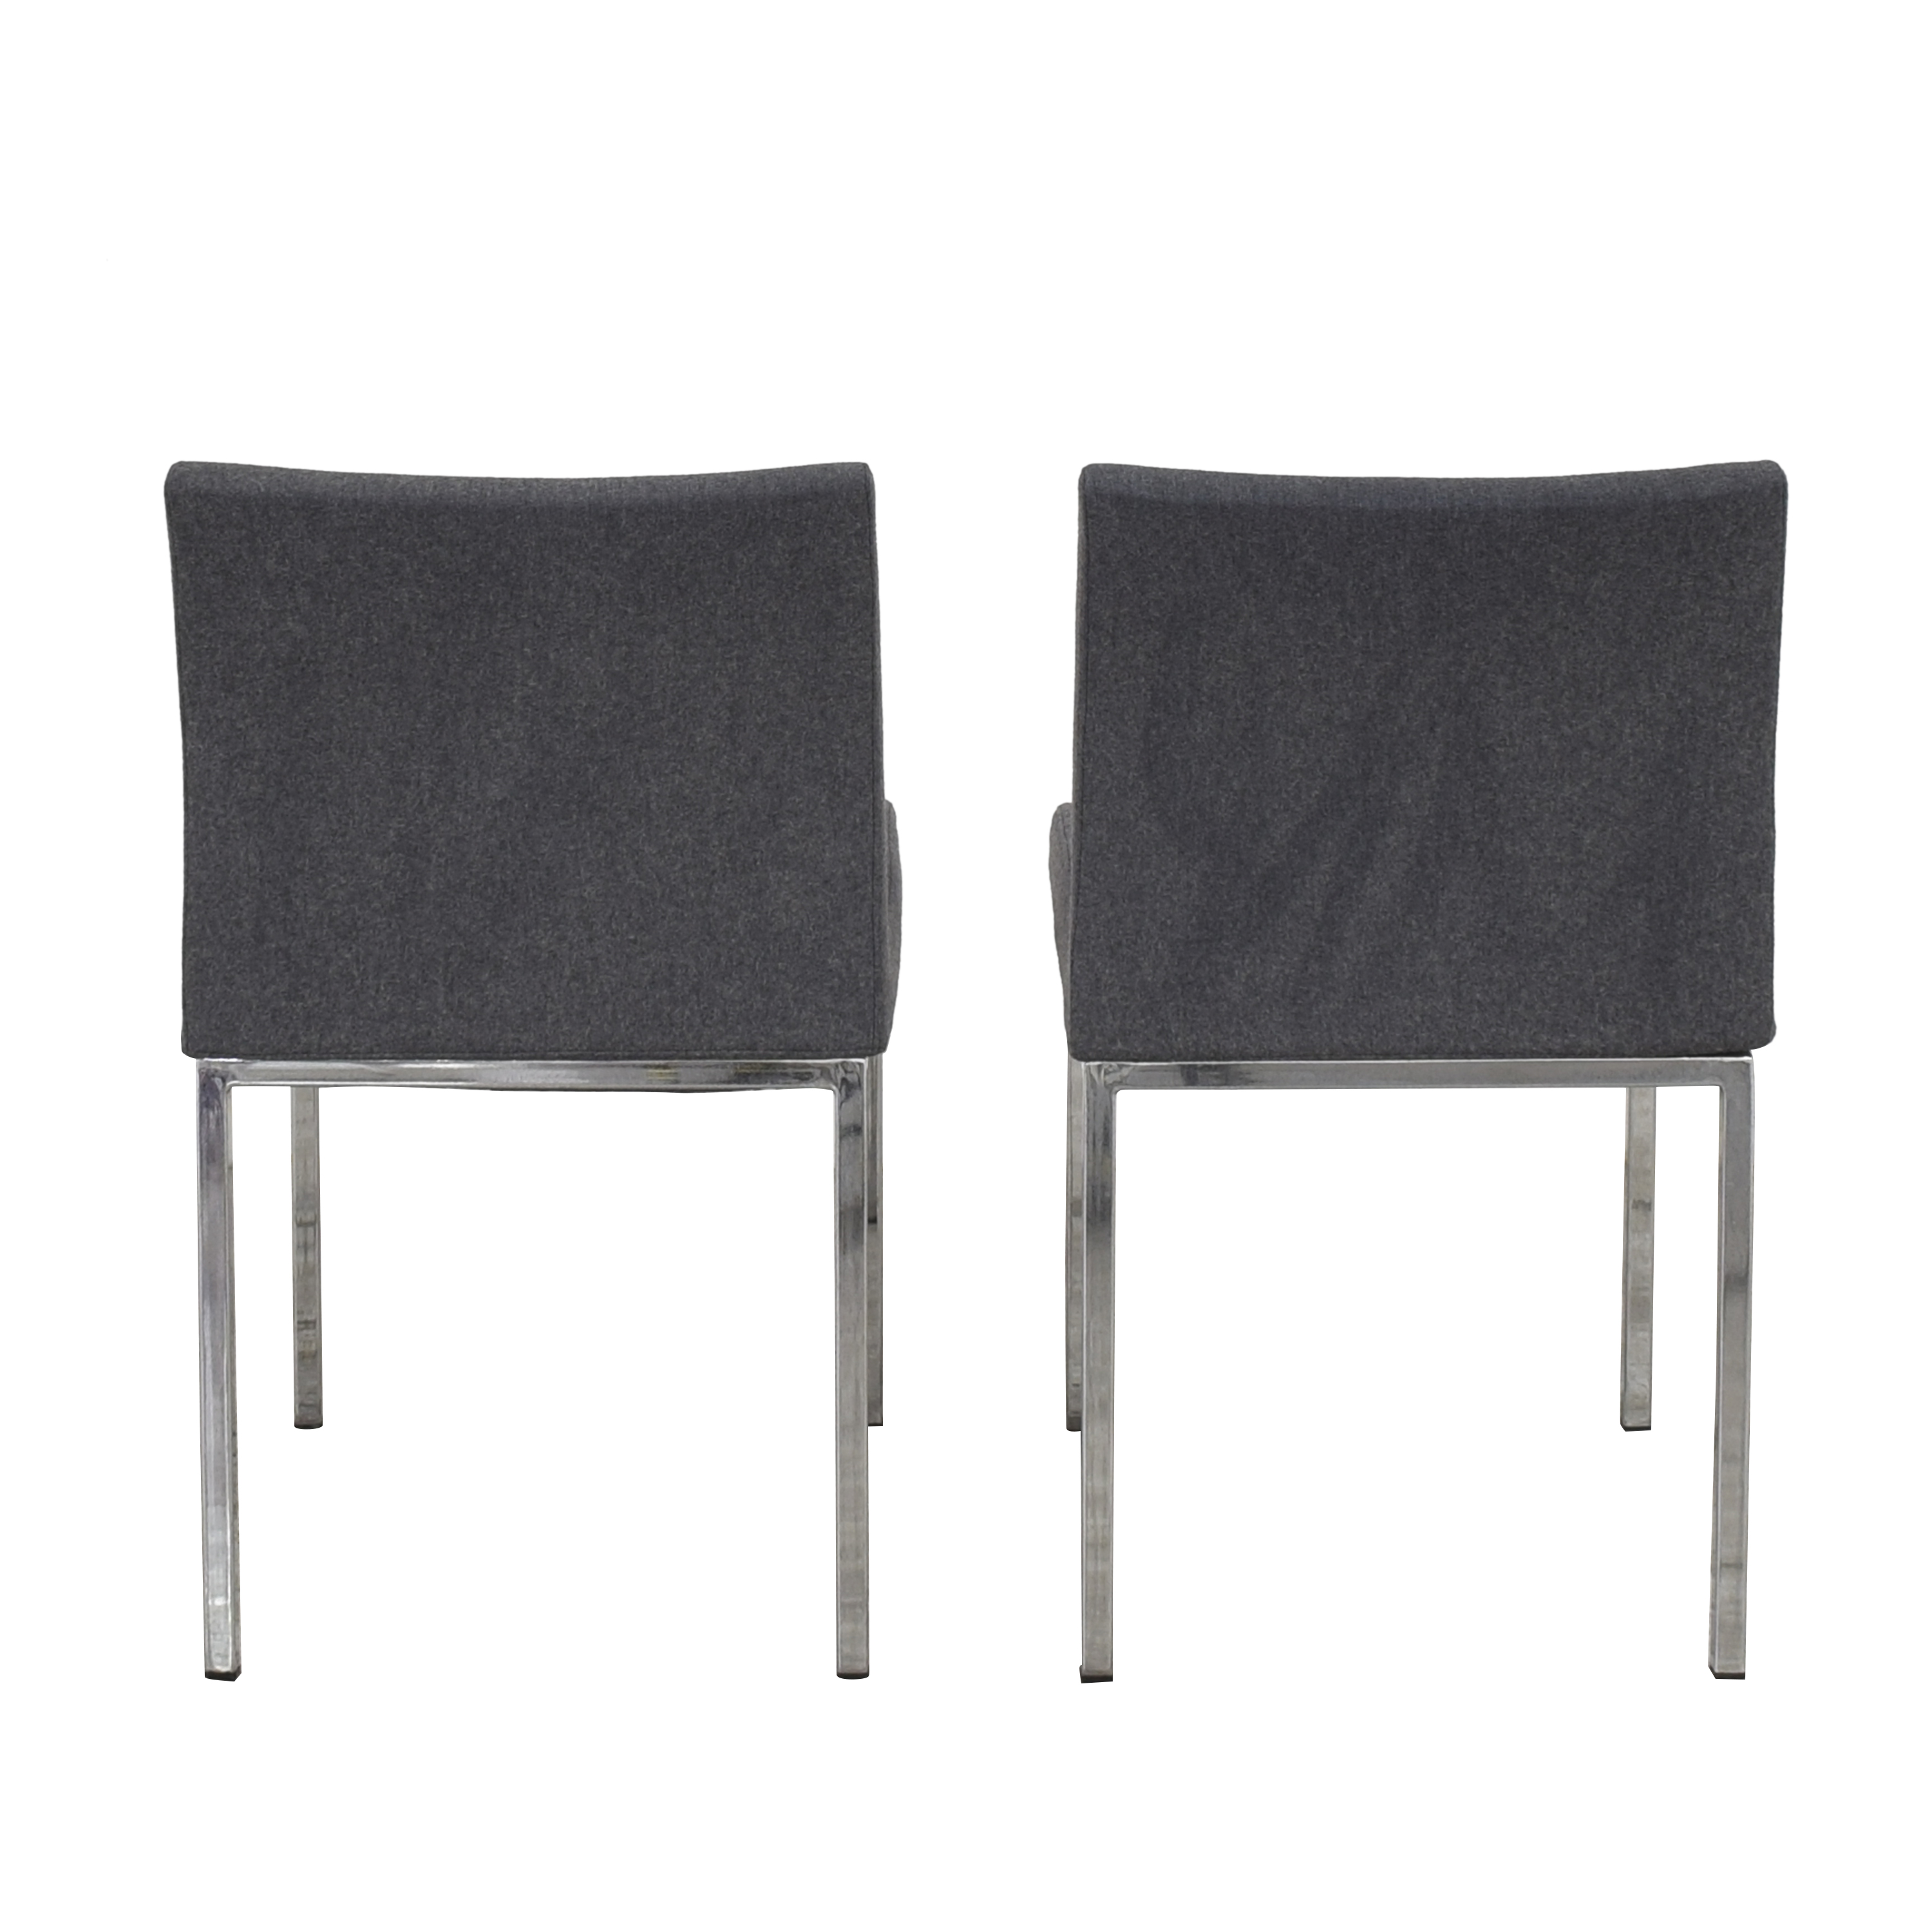 Crate & Barrel Upholstered Dining Chairs sale